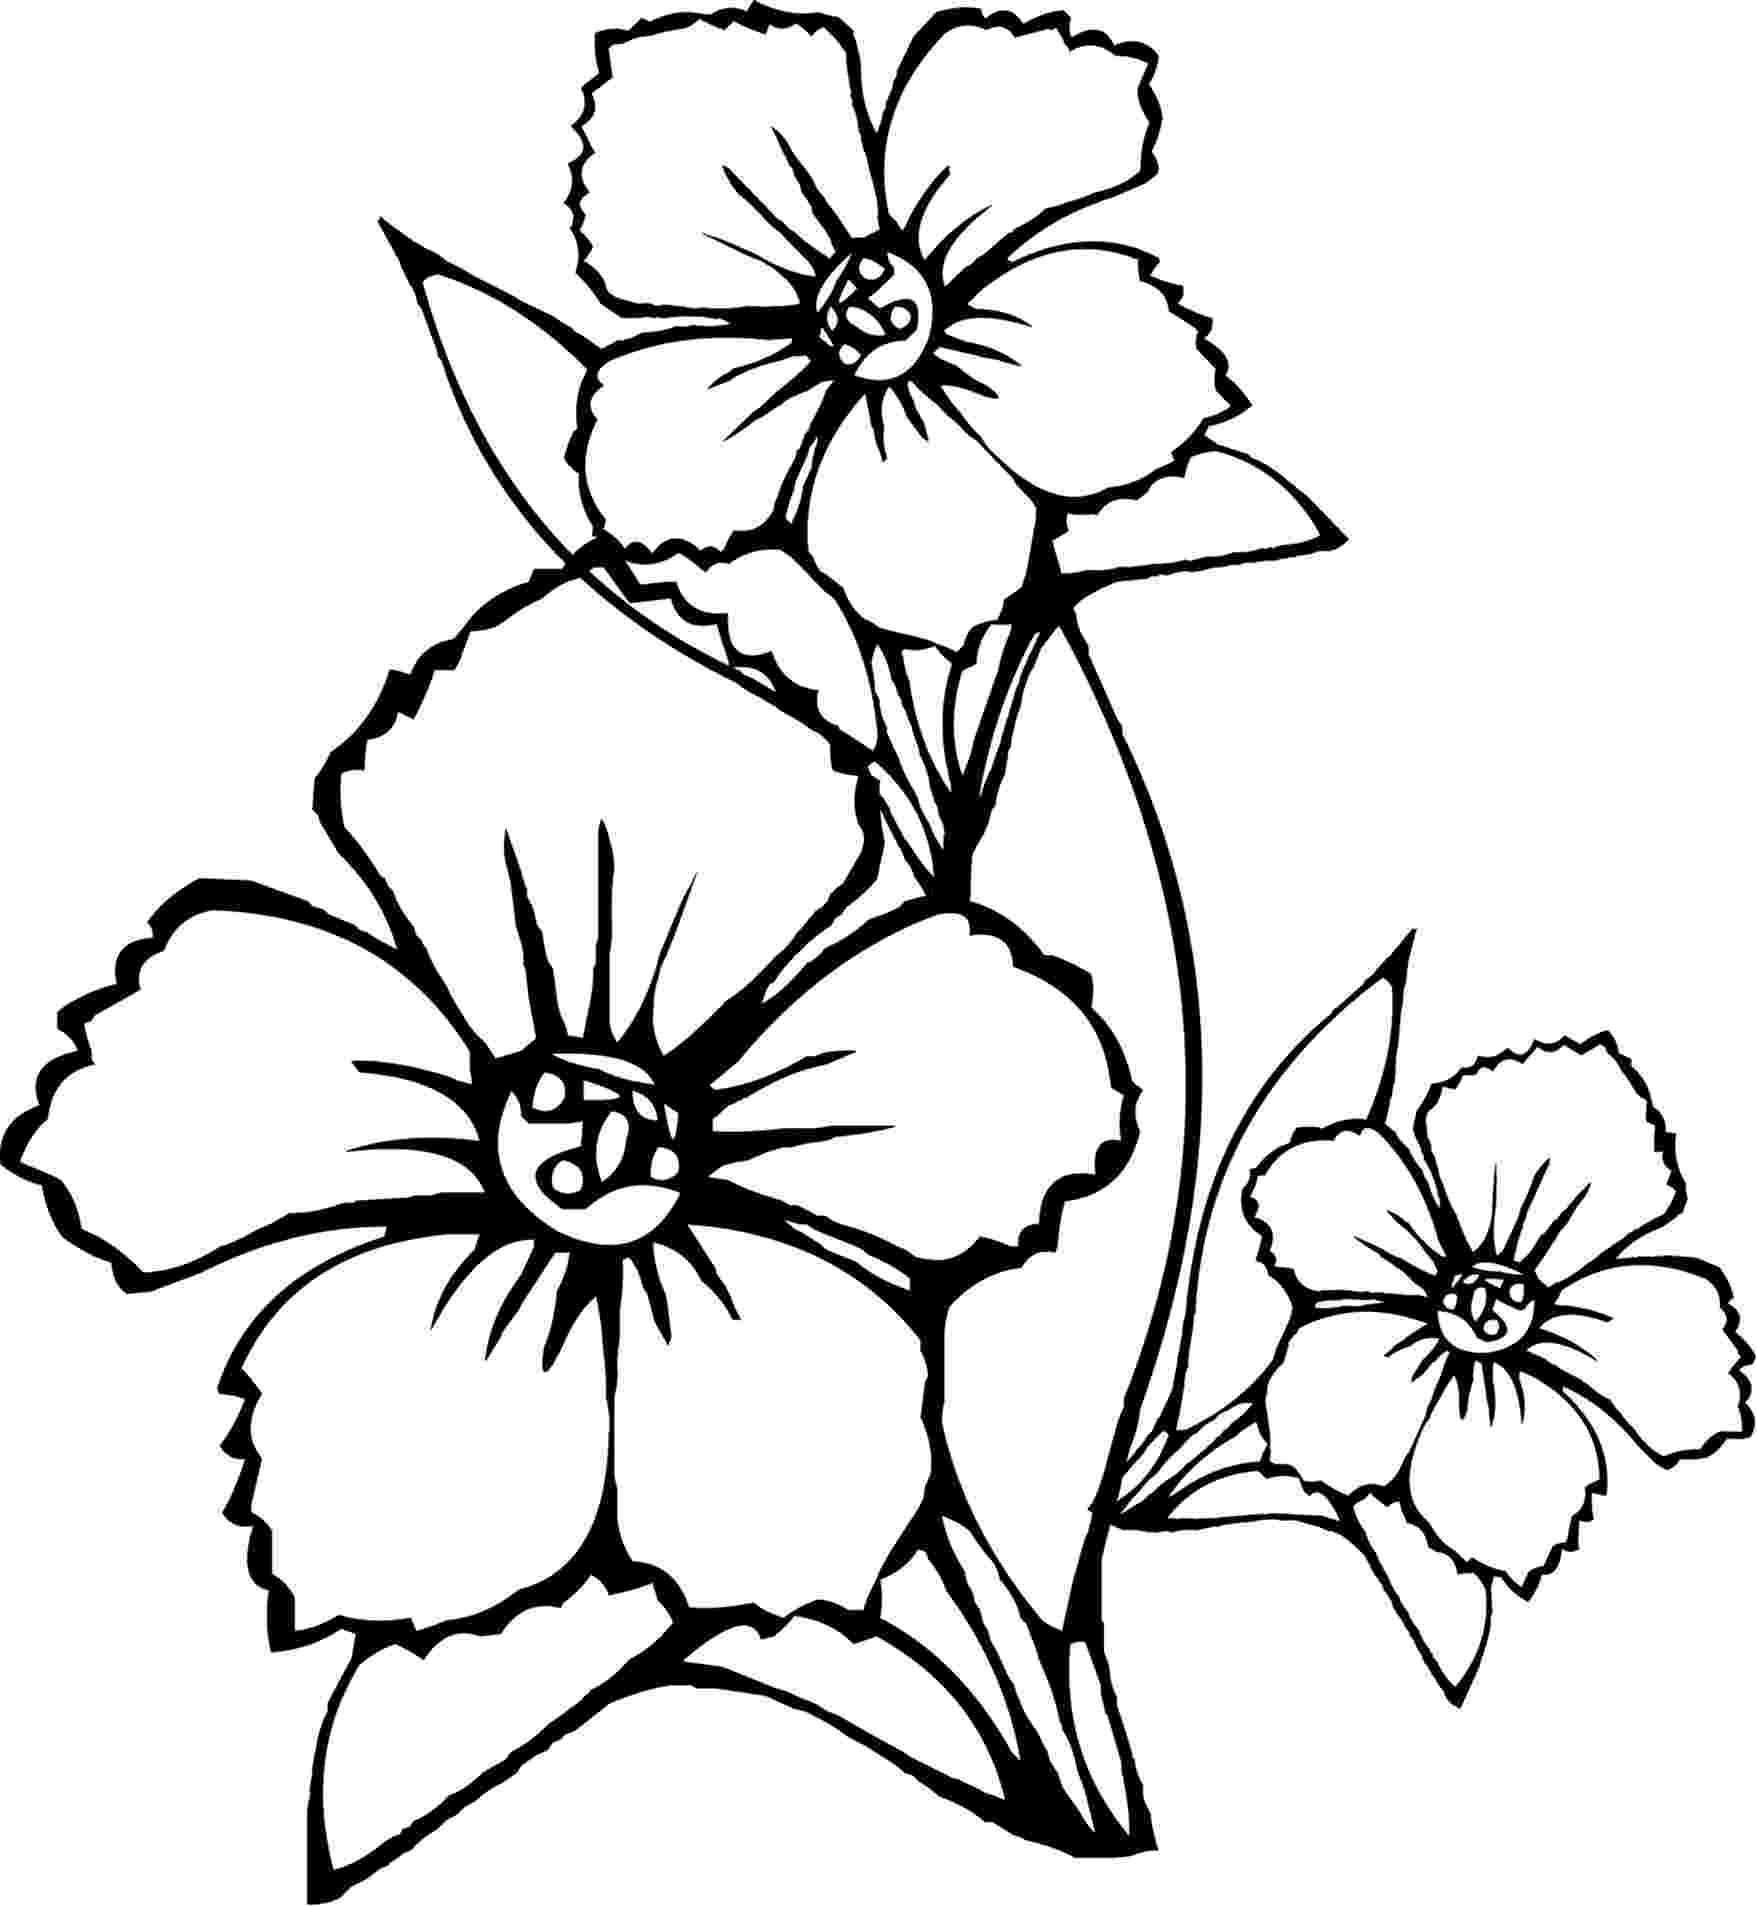 colouring pages for flowers free printable flower coloring pages for kids best for pages colouring flowers